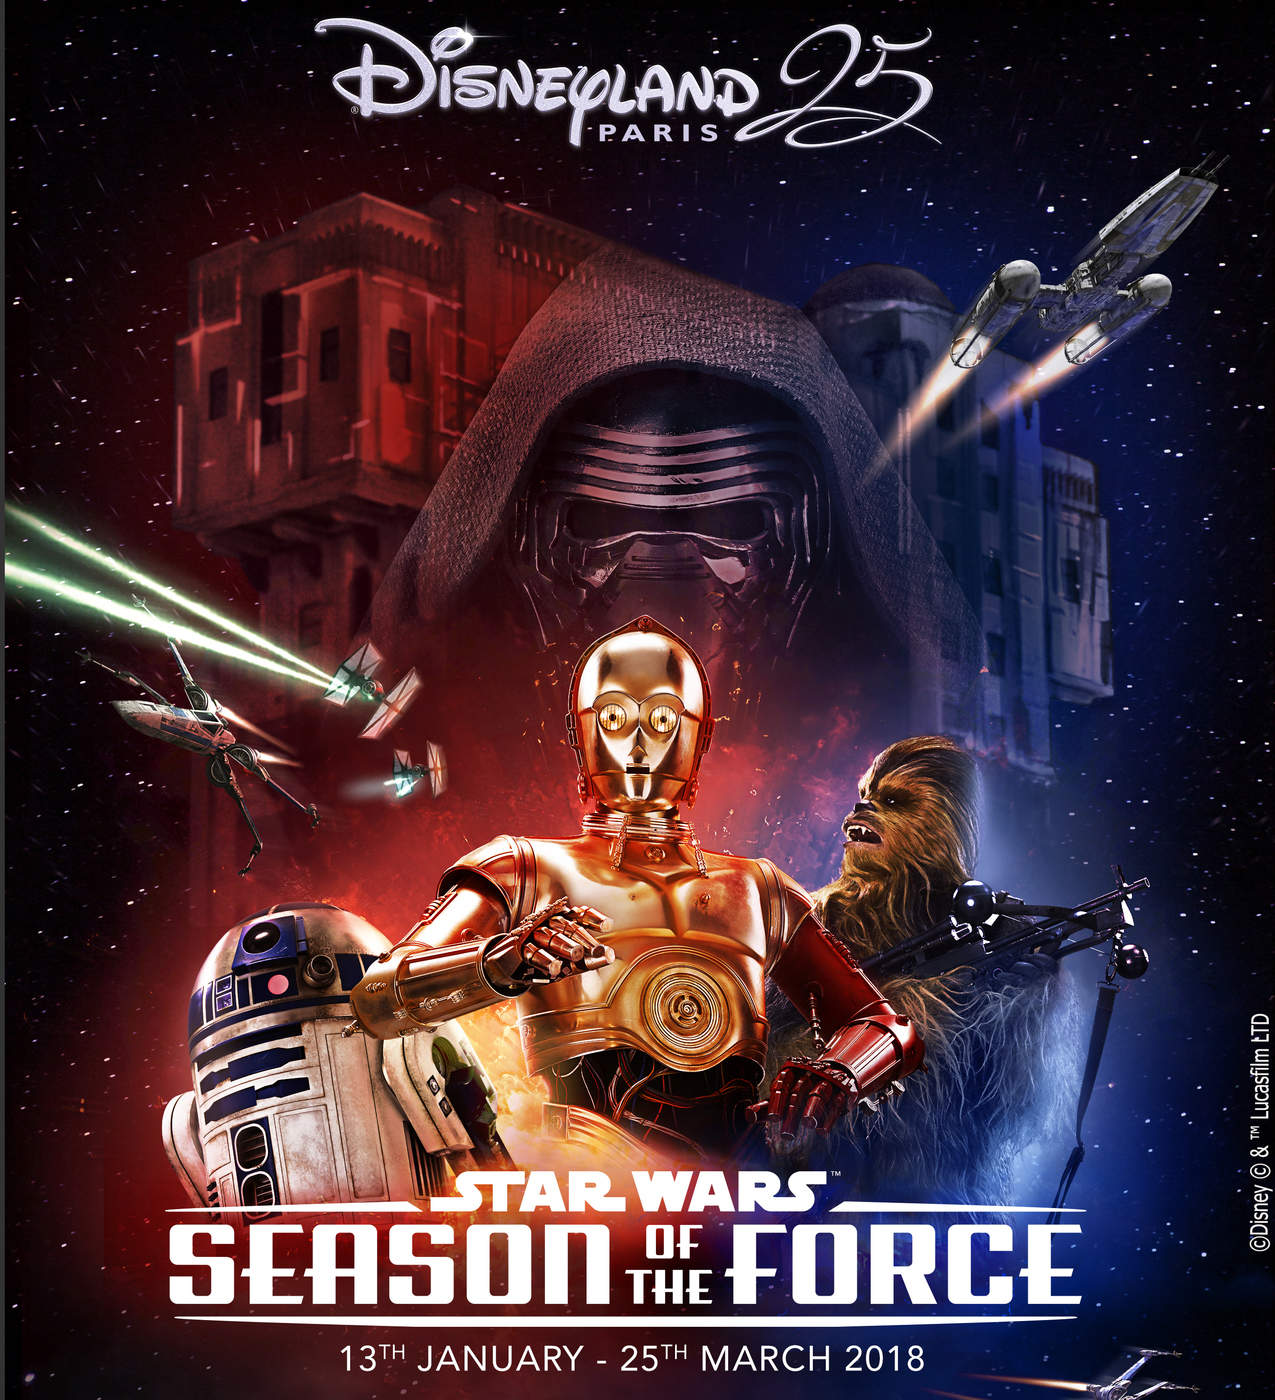 season of the force - star